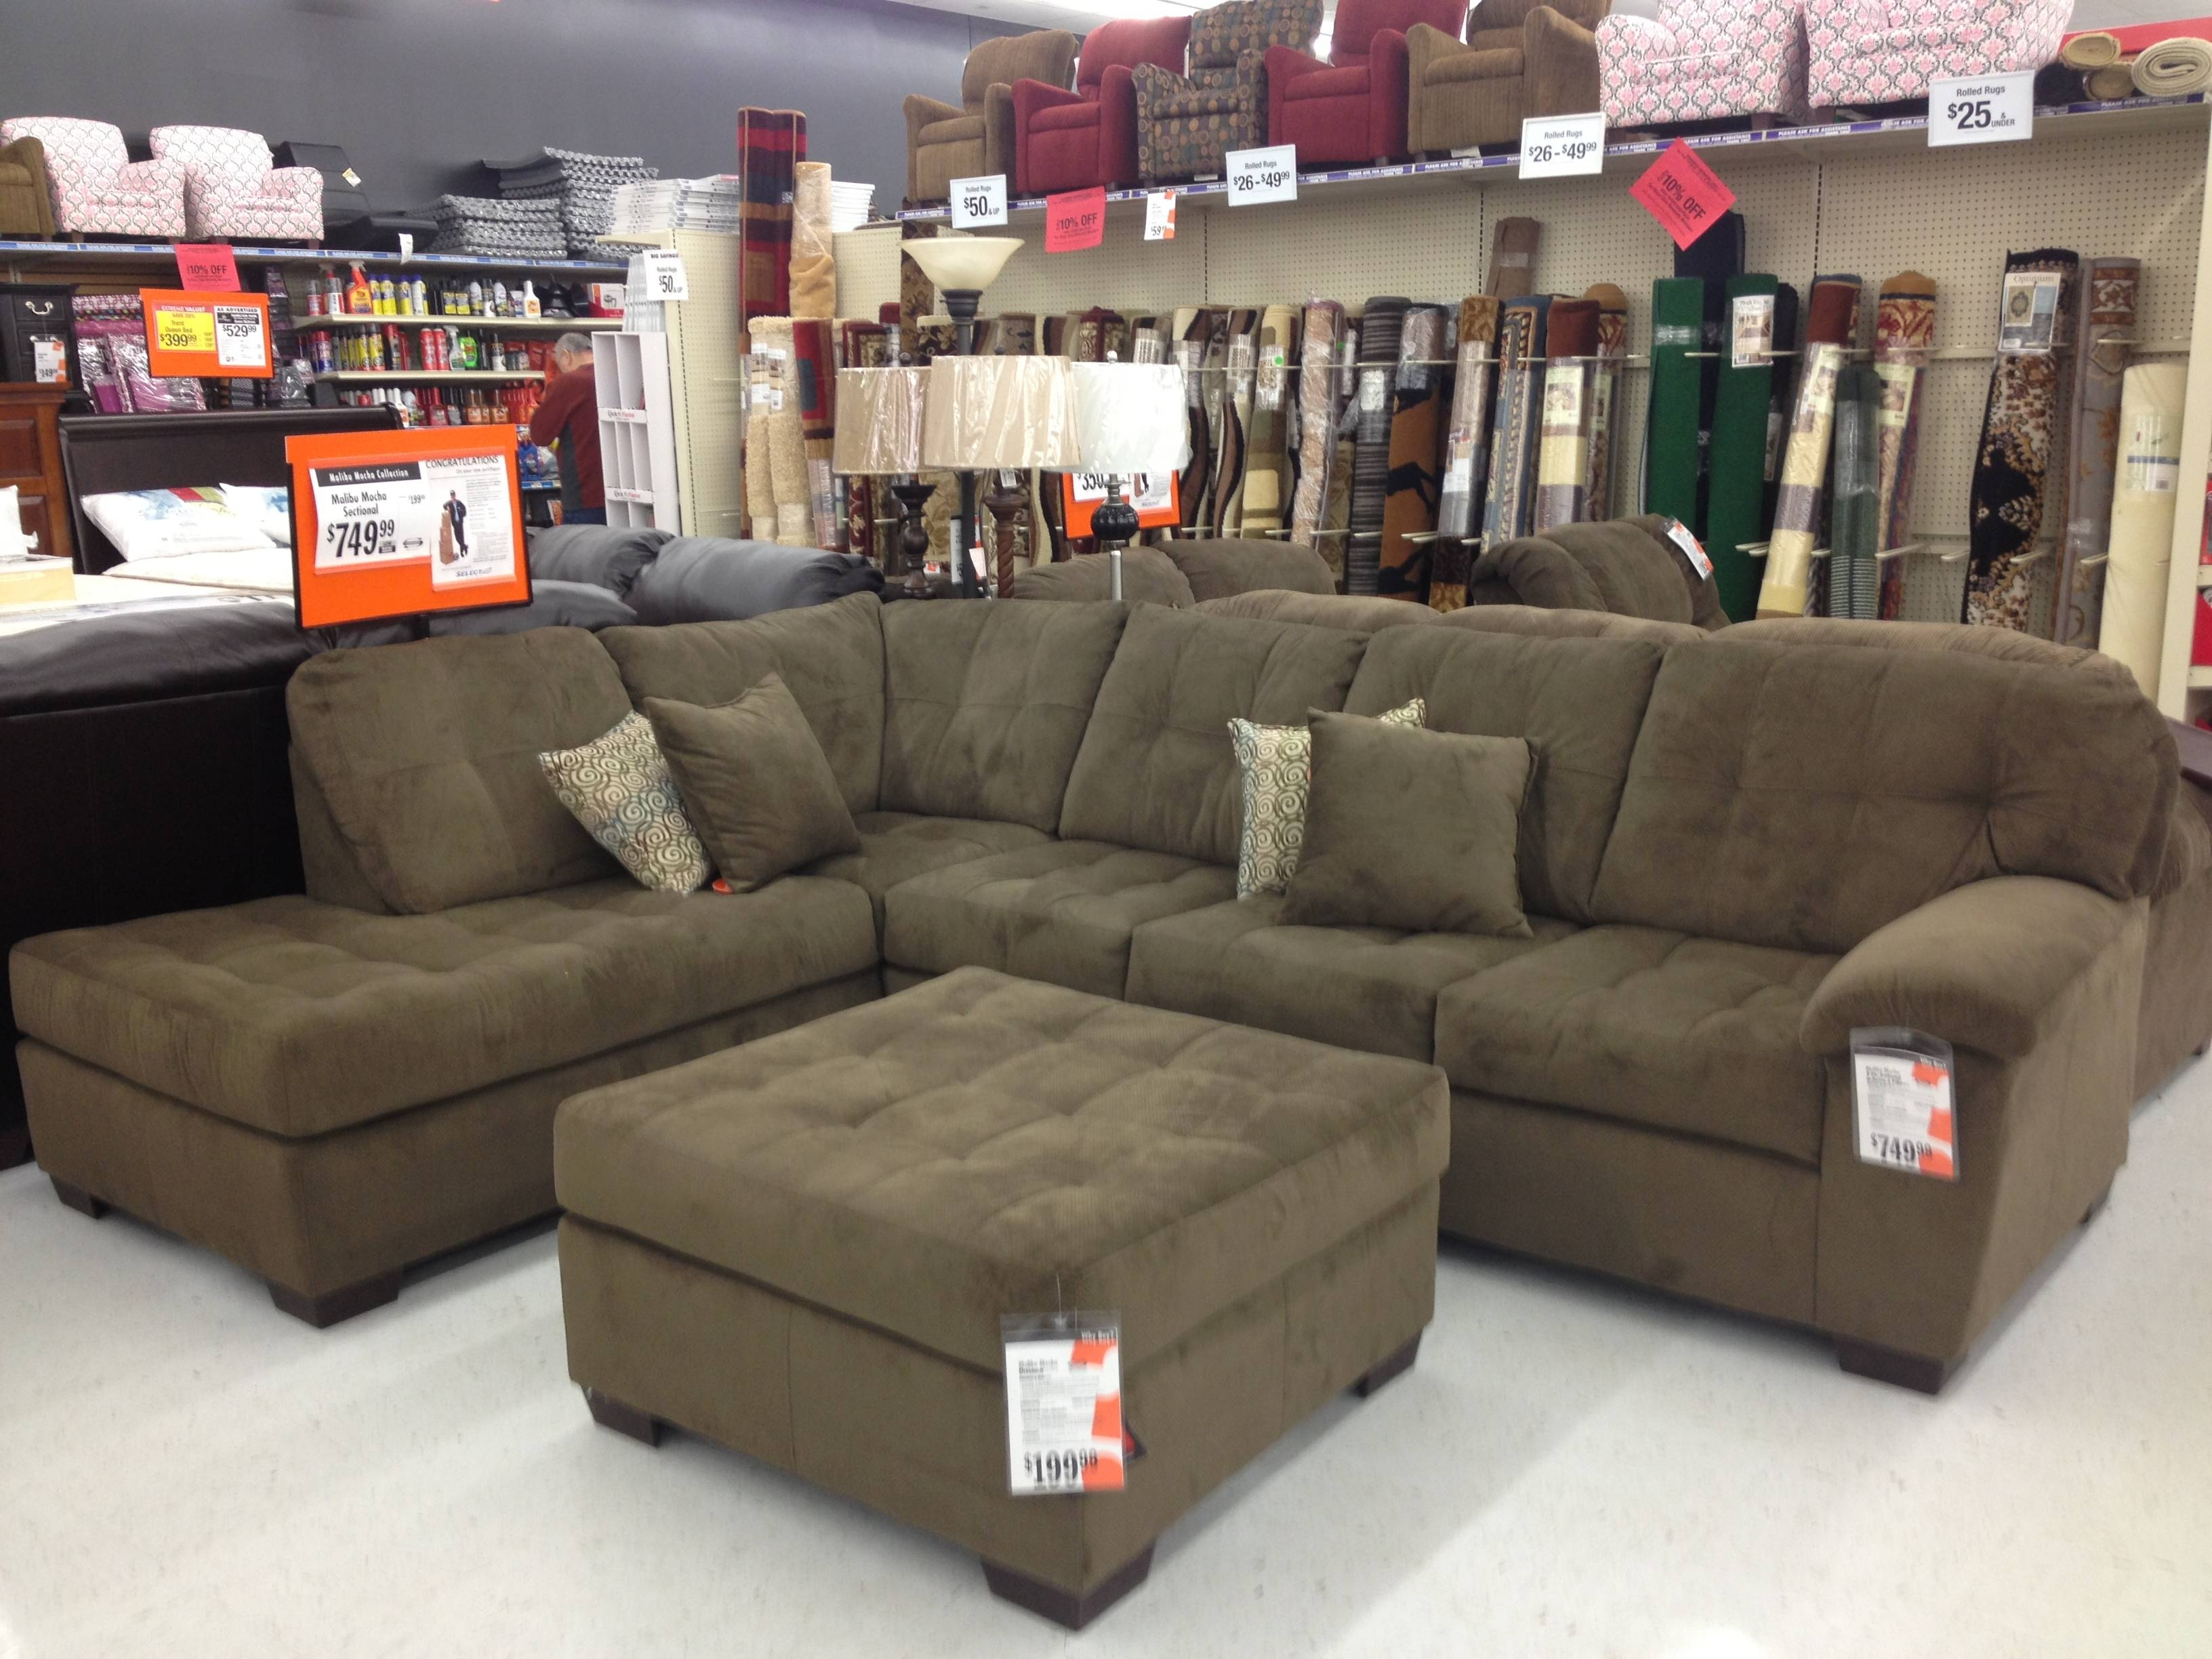 Furniture: Sectional Sofas Big Lots Simmons Bonded Leather Sofa within Big Lots Couches (Image 5 of 15)